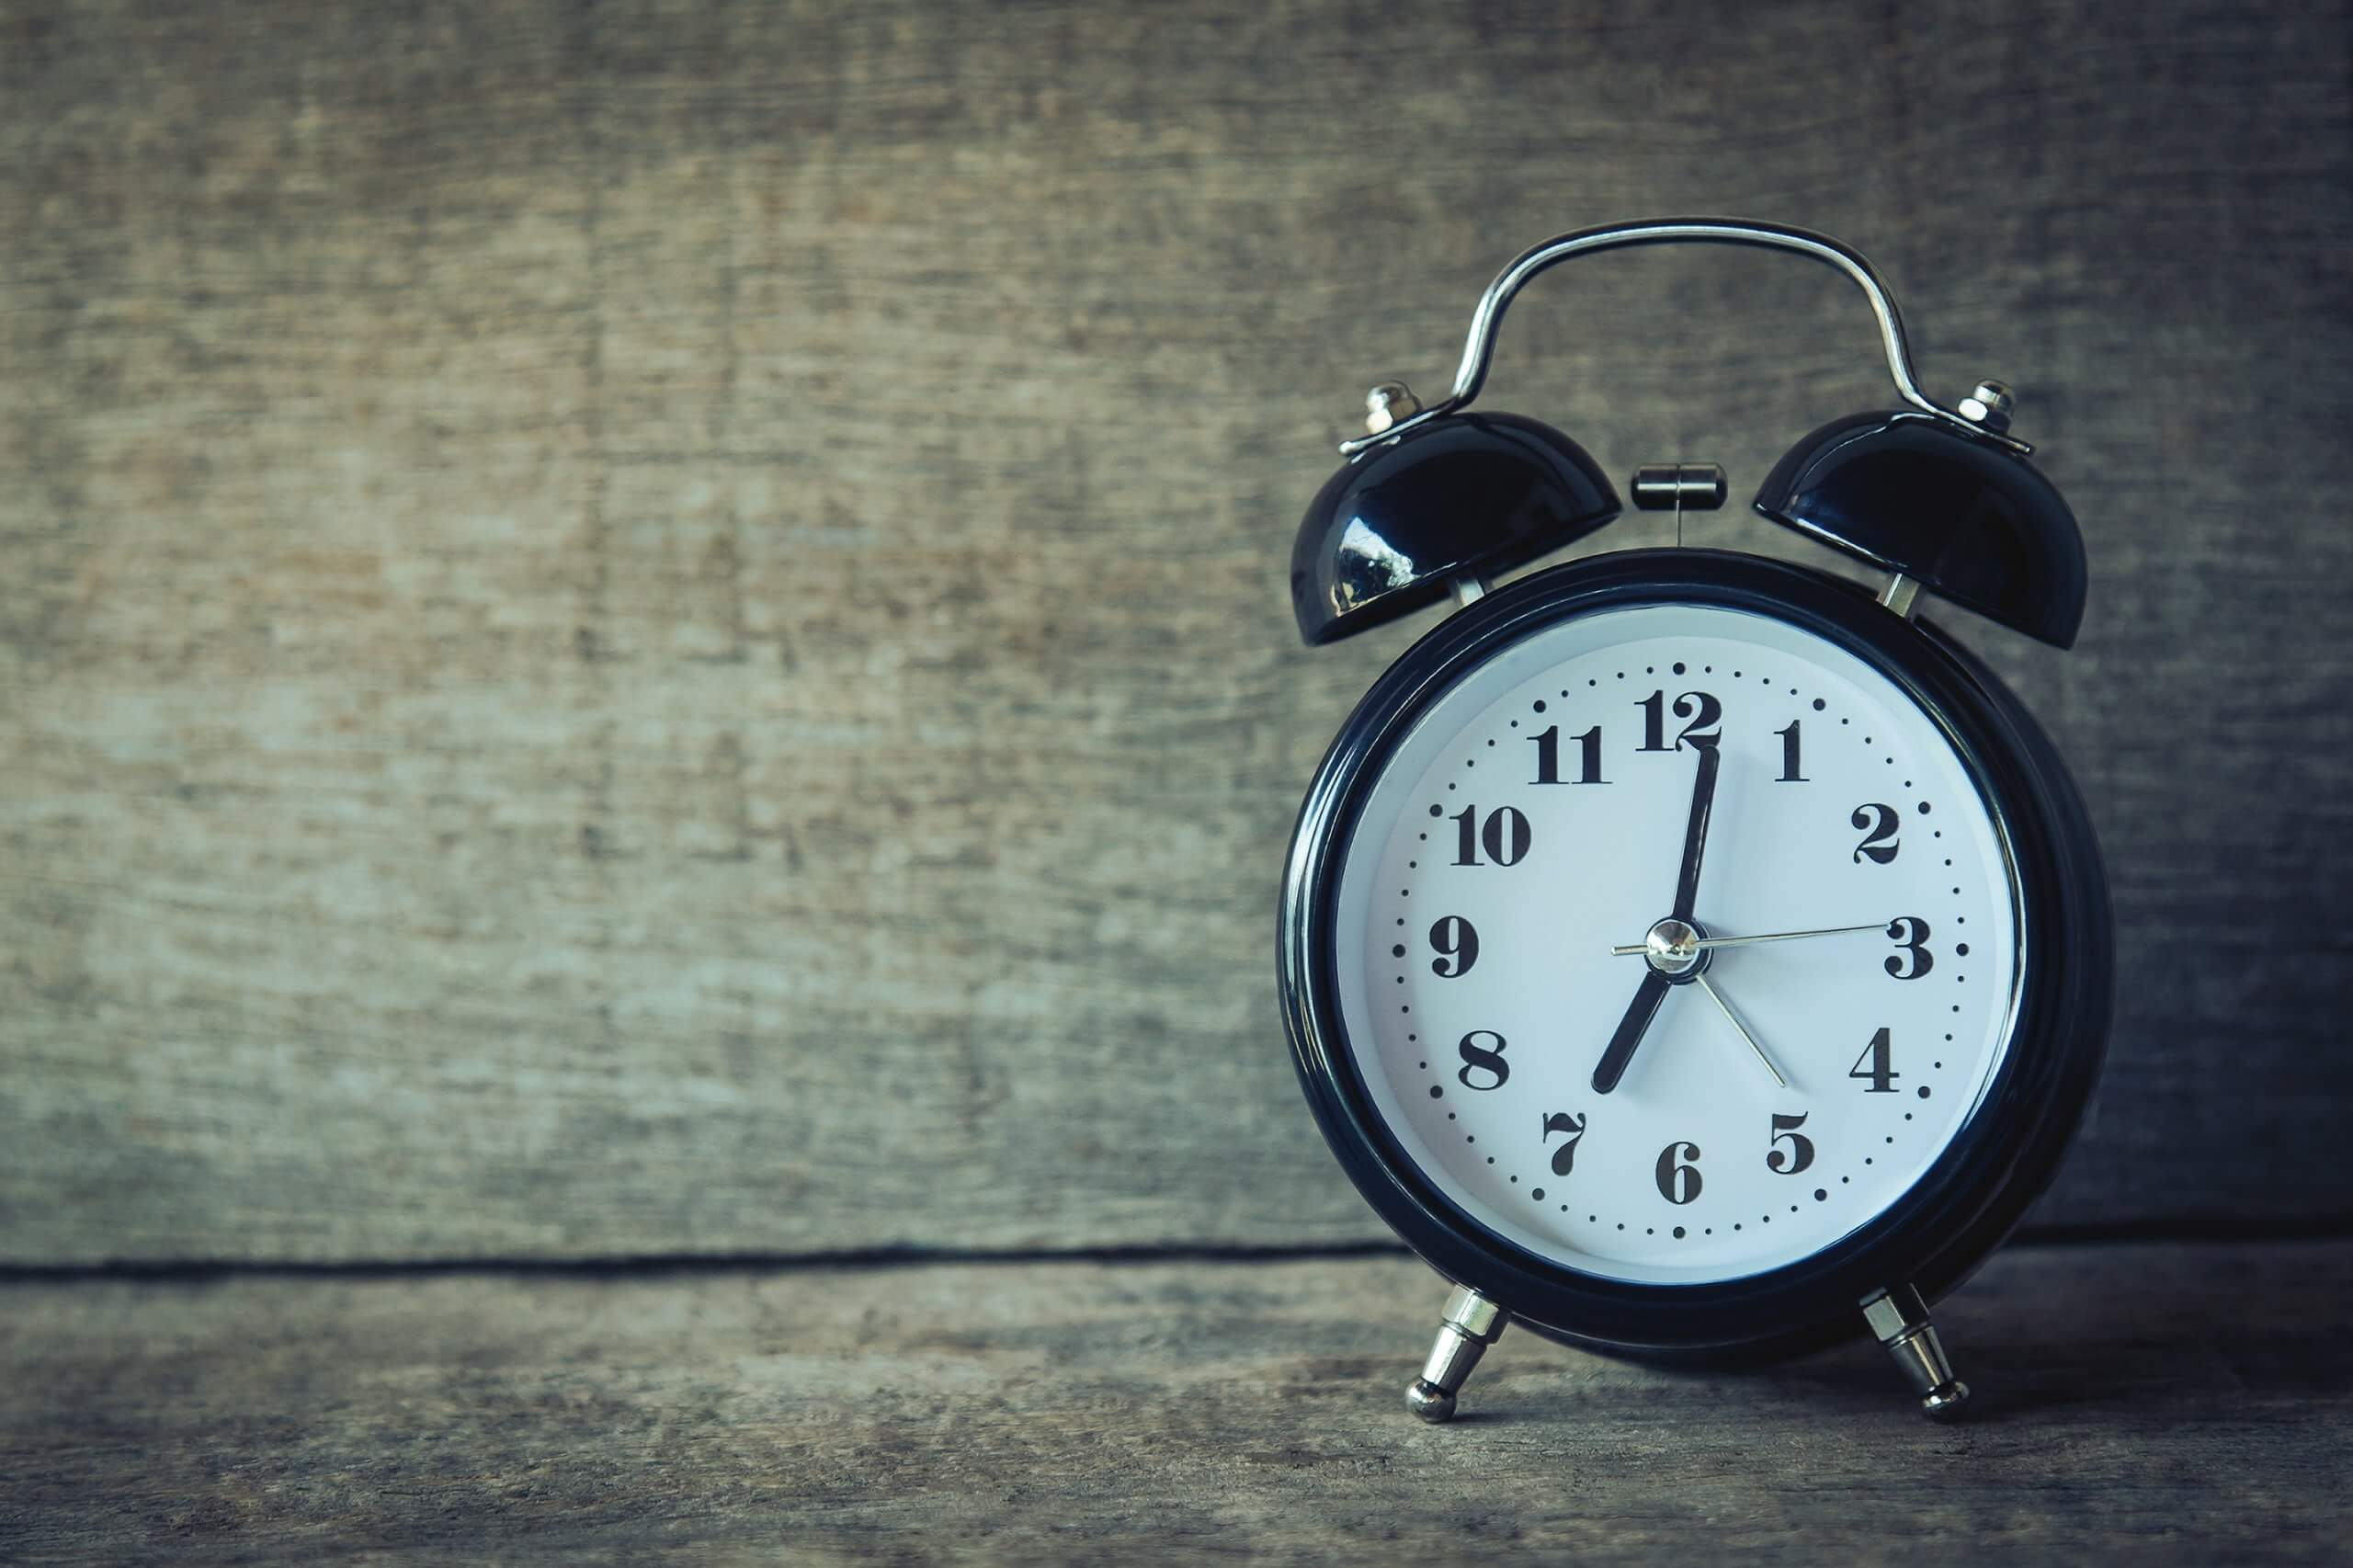 An alarm clock. One way to get better sleep is to set a routine before going to bed.